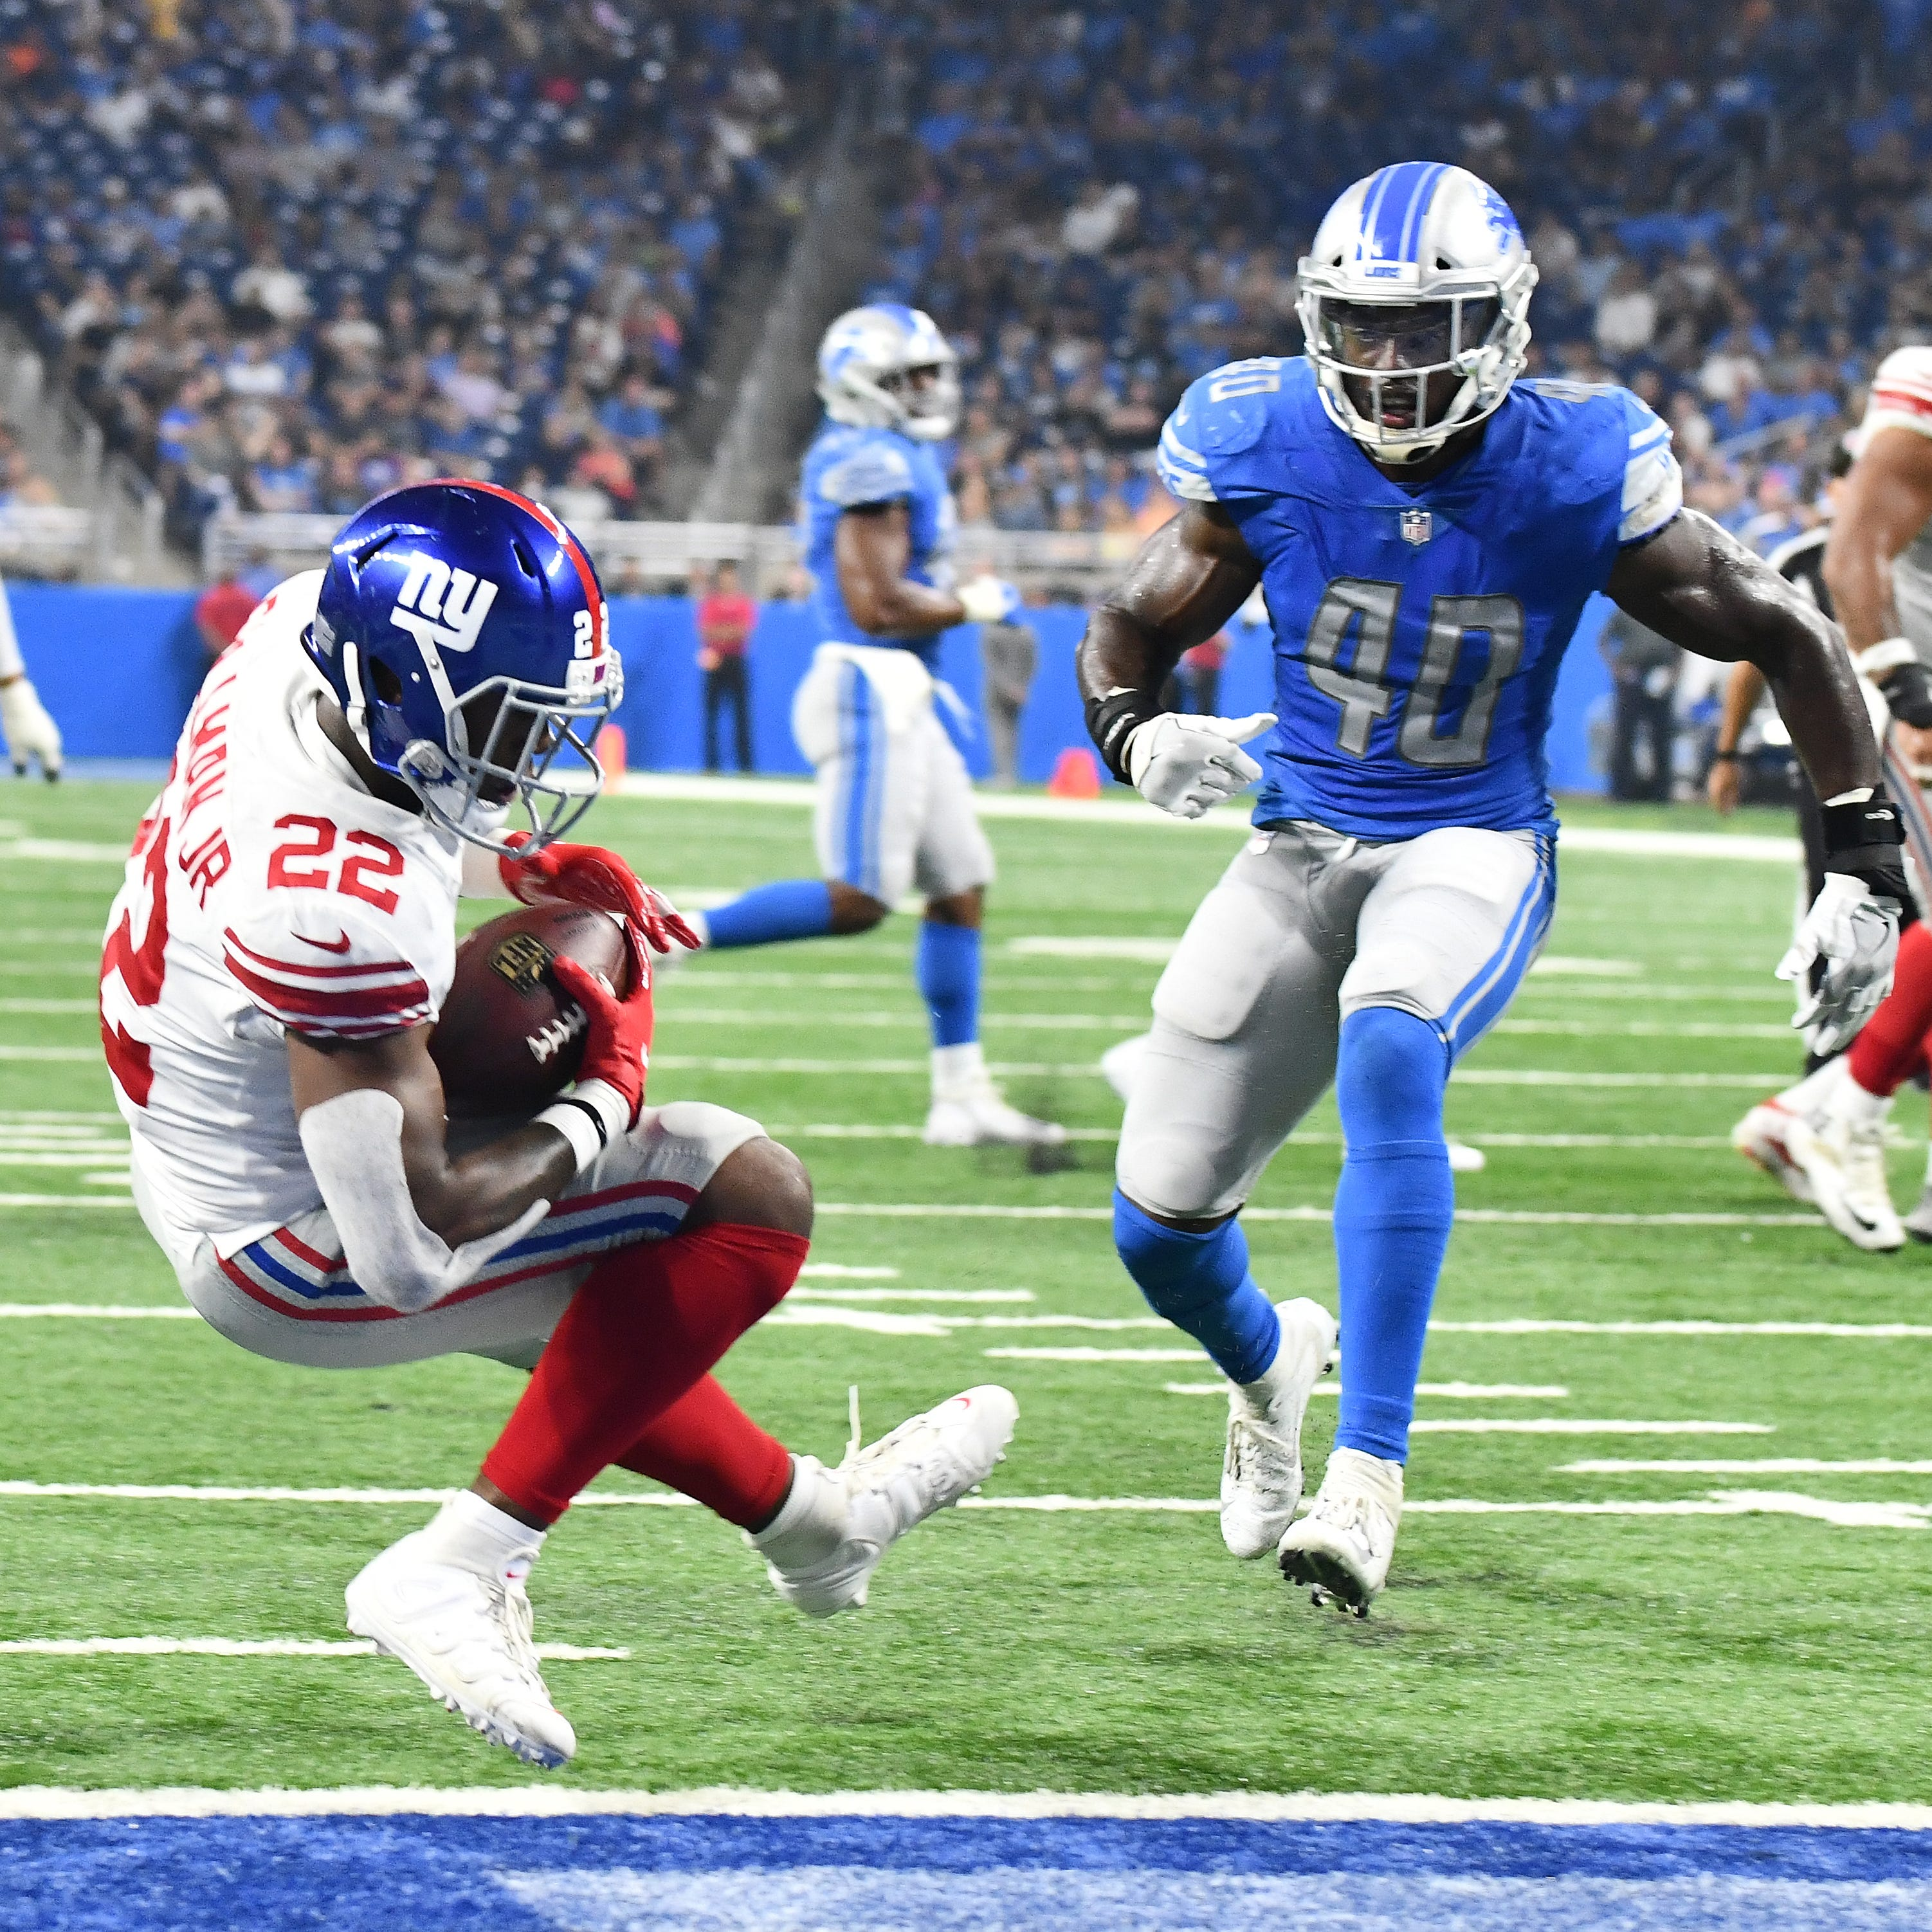 Wojo: Lions look weak, but it's too early to freak